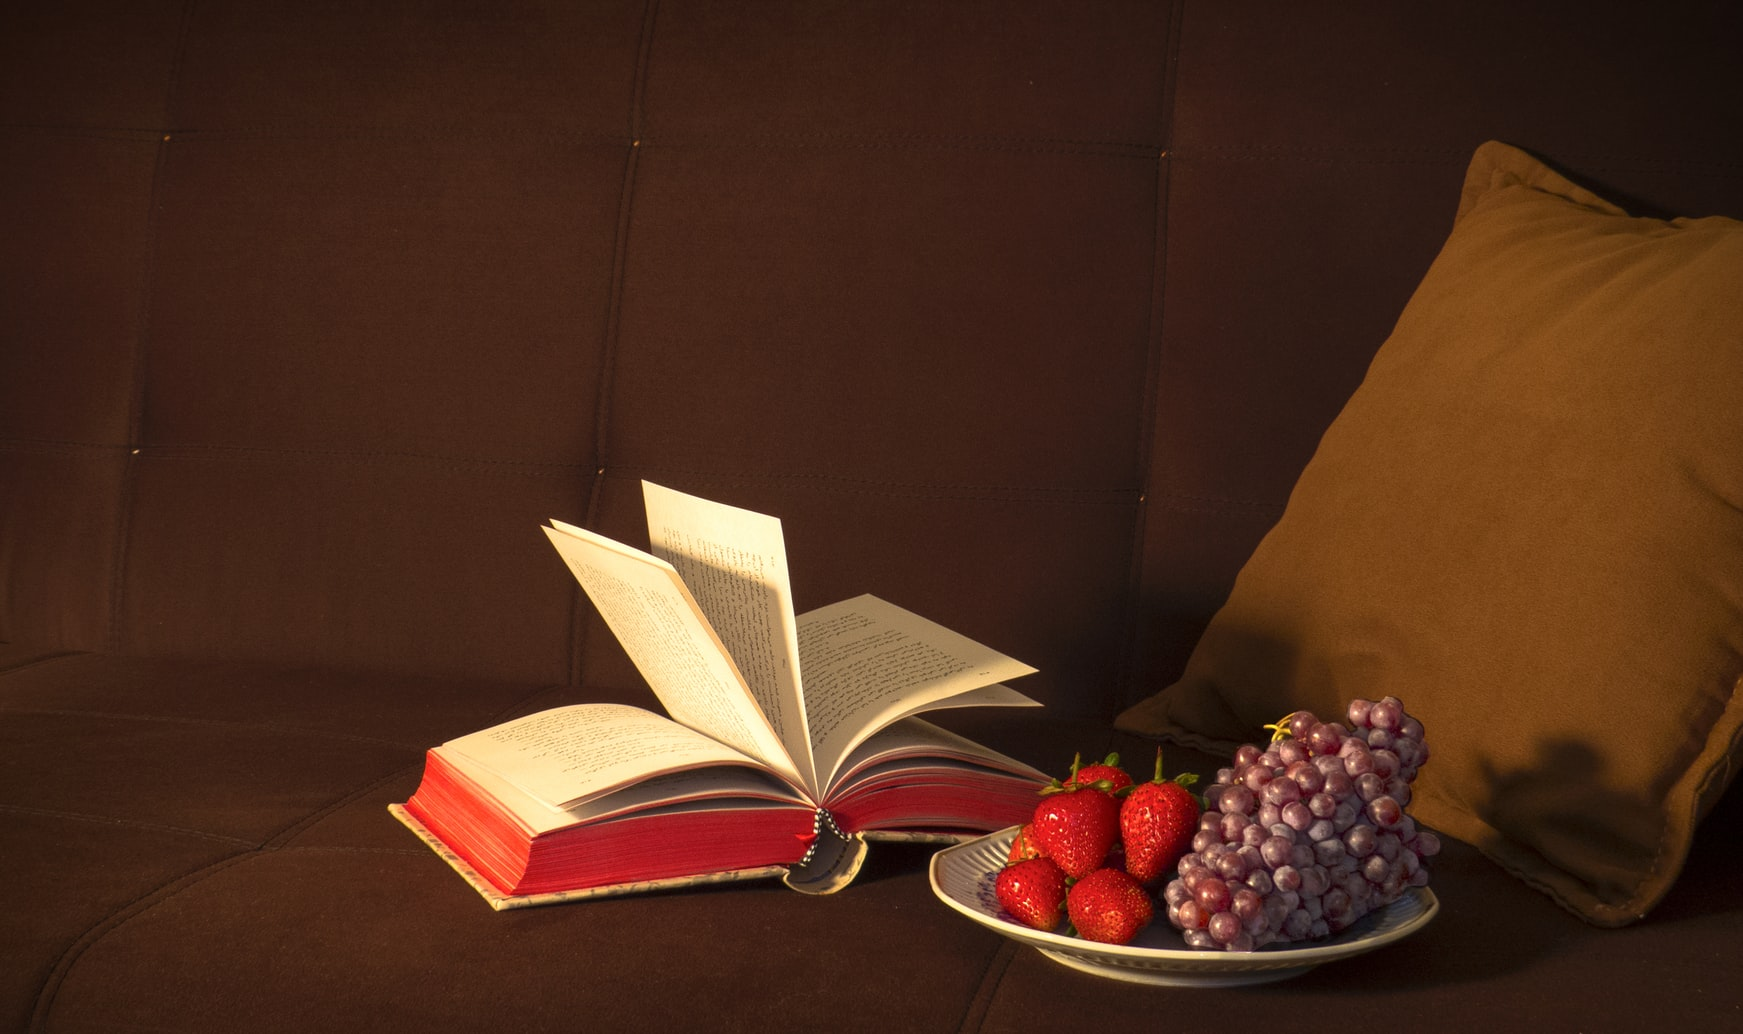 Strawberries and grapes on white plate next to open book on brown sofa